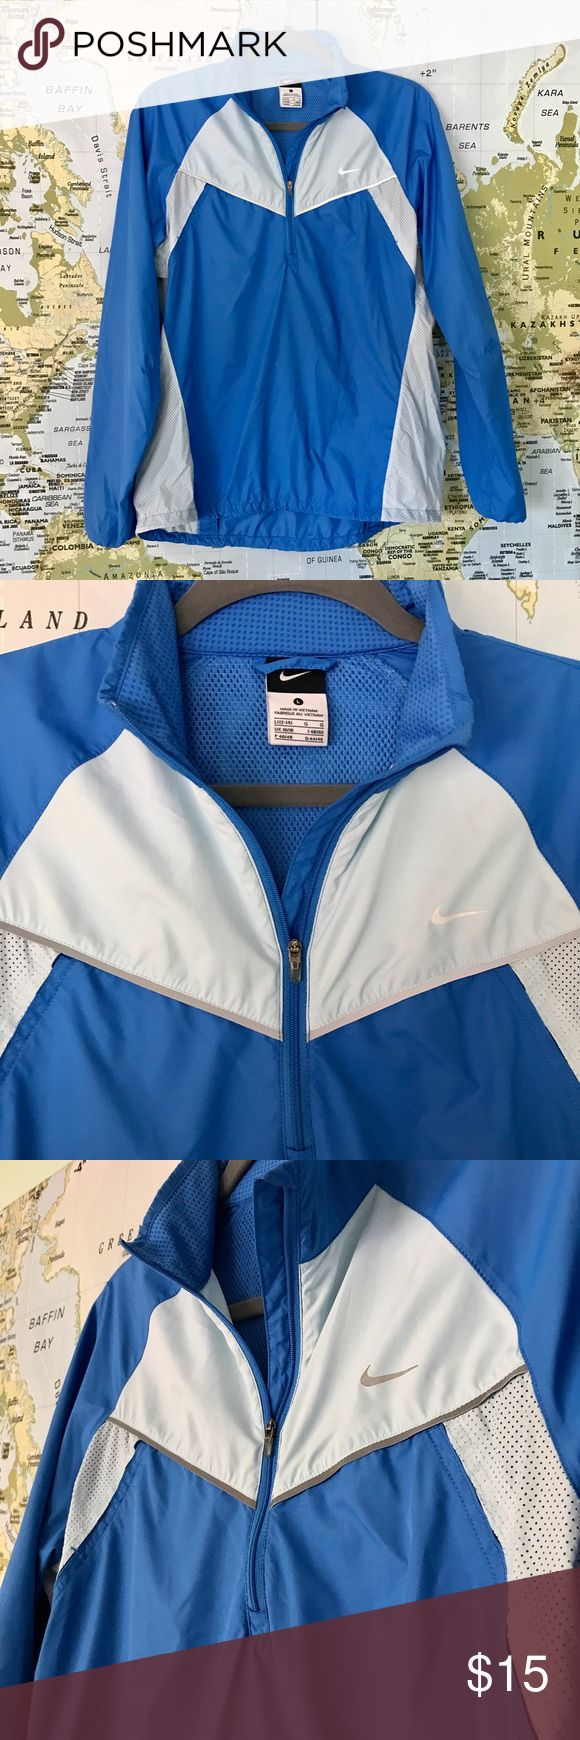 Blue/Light Blue Nike Running Jacket/Windbreaker Size Large Blue and Light Blue Nike Running Jacket. Excellent Condition. Small pocket in back. Silver reflecting strips located on the front and back of the jacket. Light material, 100% Polyester. Nike Jackets & Coats